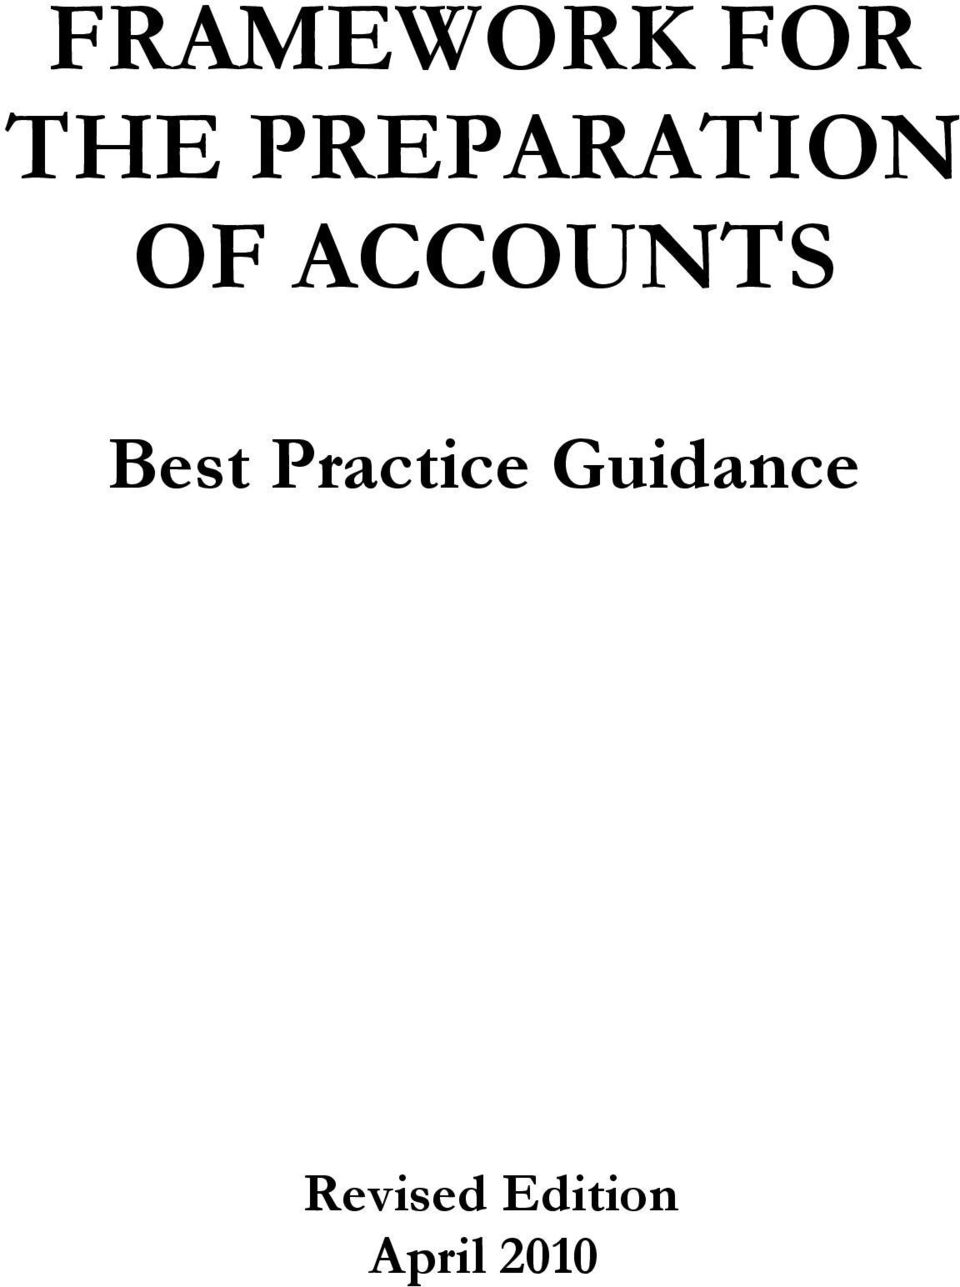 ACCOUNTS Best Practice